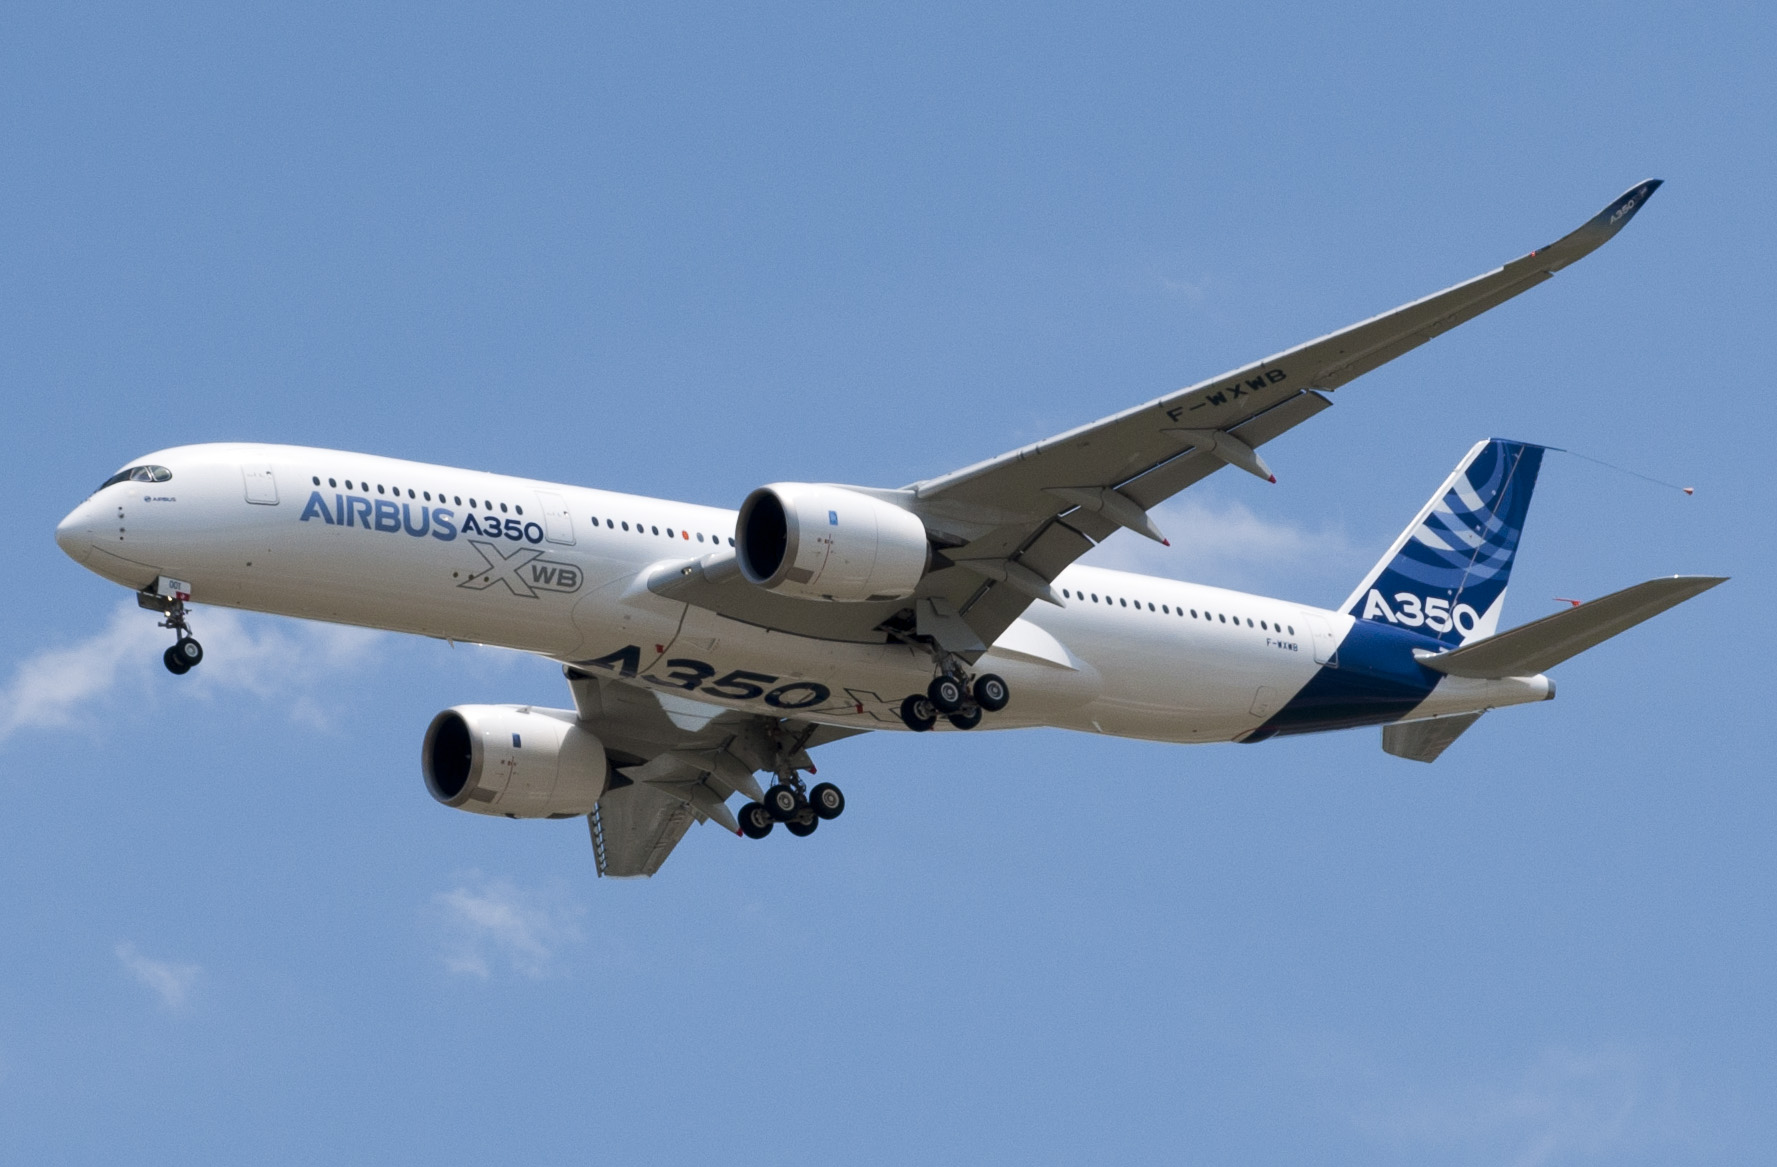 A350 first flight. Low pass